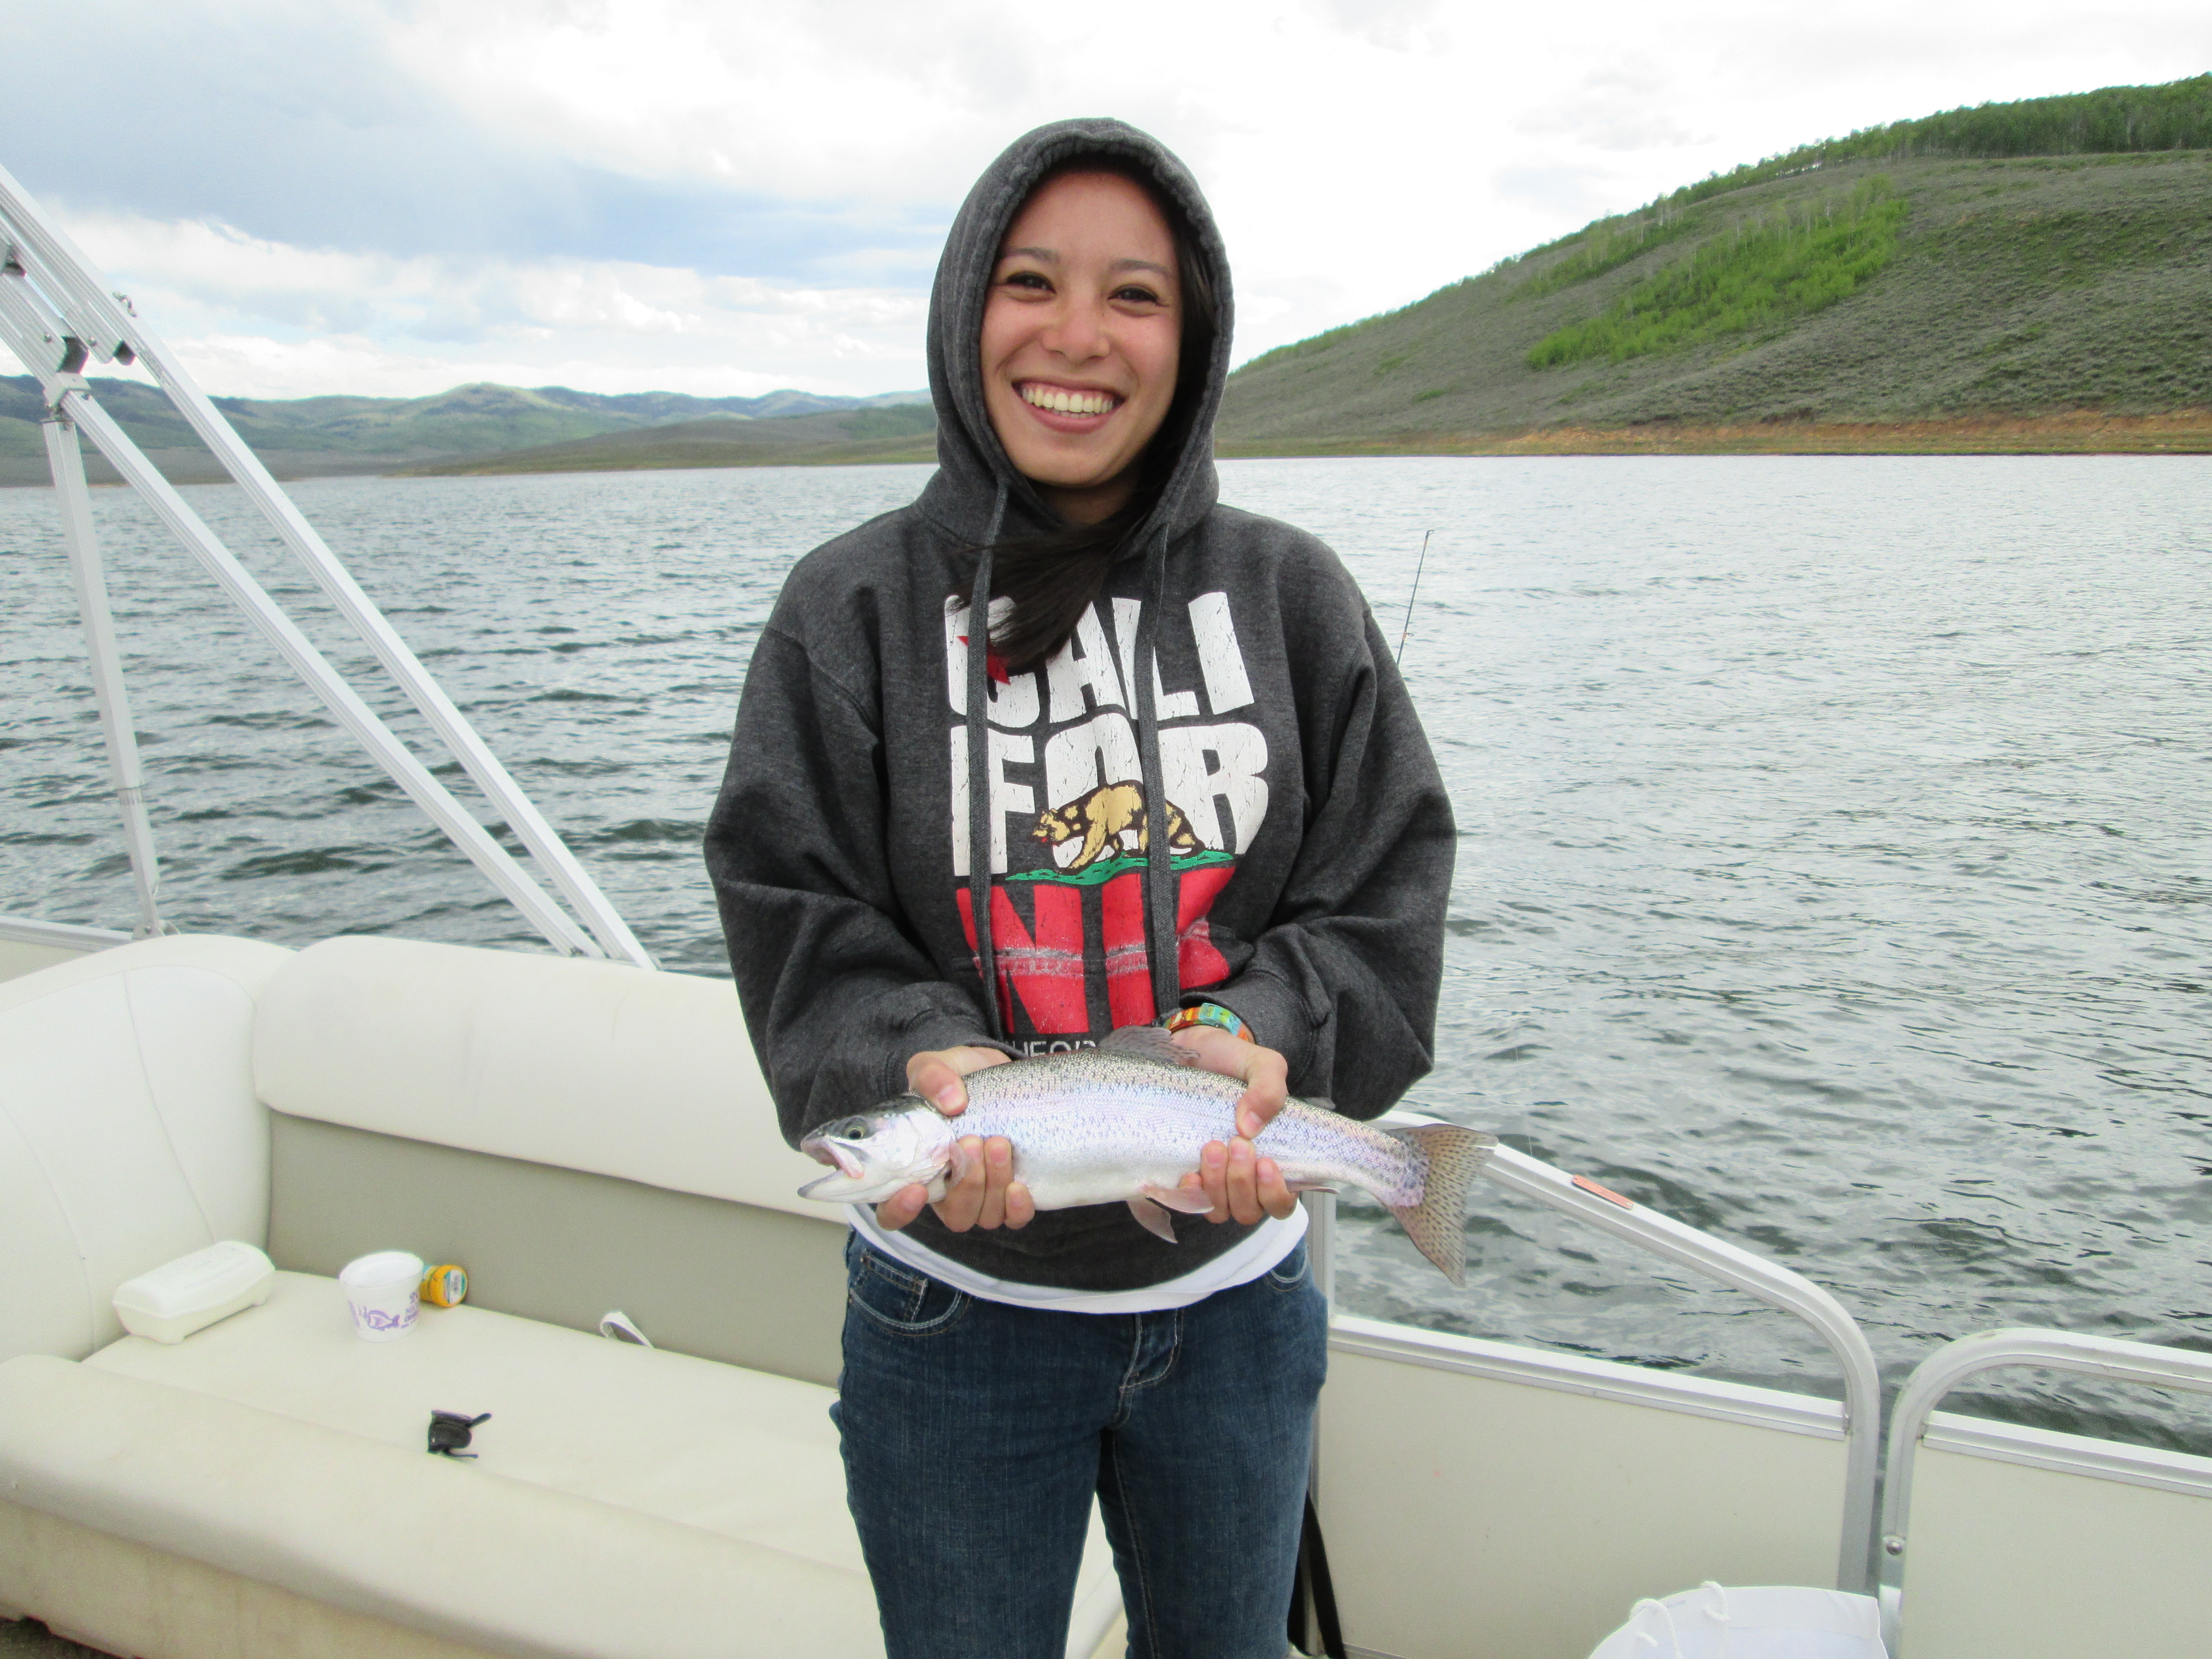 Ashley Urquhart holds a rainbow trout she caught at Strawberry Reservoir in May. (Photo by Tom Urquhart.)